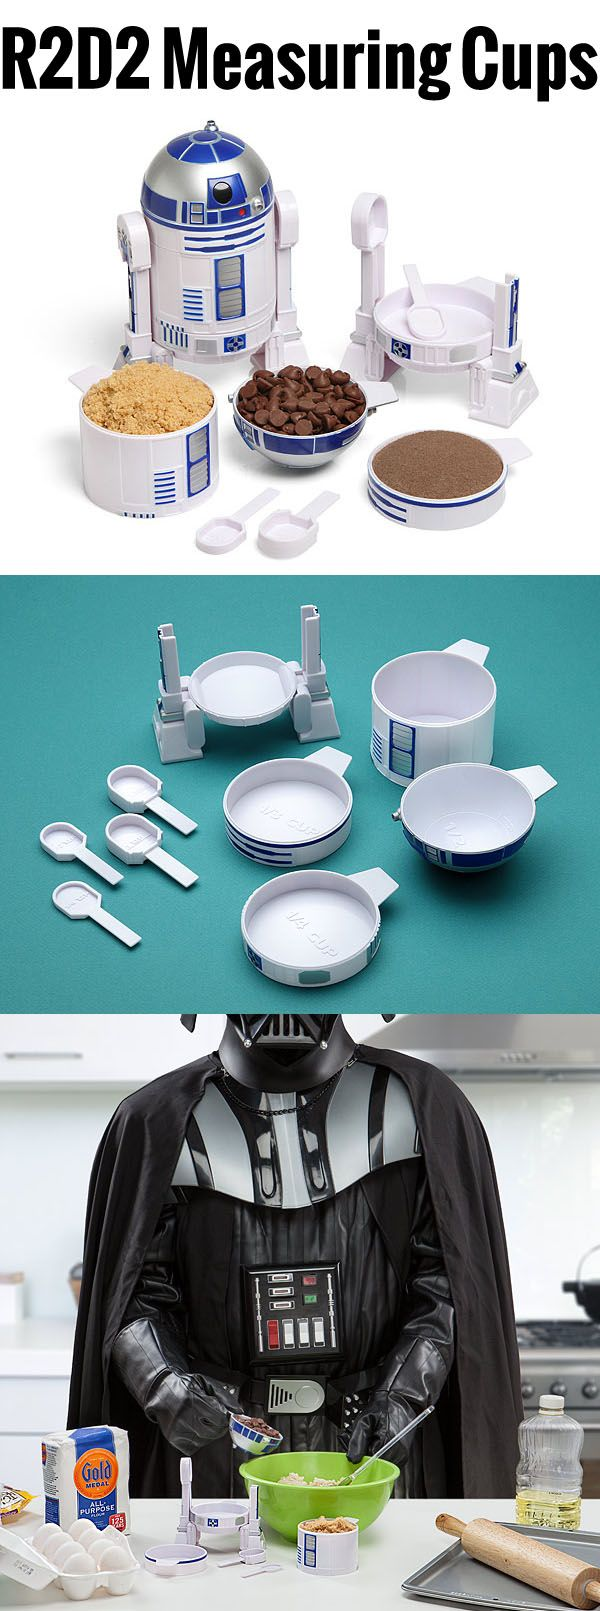 R2D2 Measuring Cup Set.This Is Definitely The Droid You Will Be Looking For In The Kitchen. $19.99